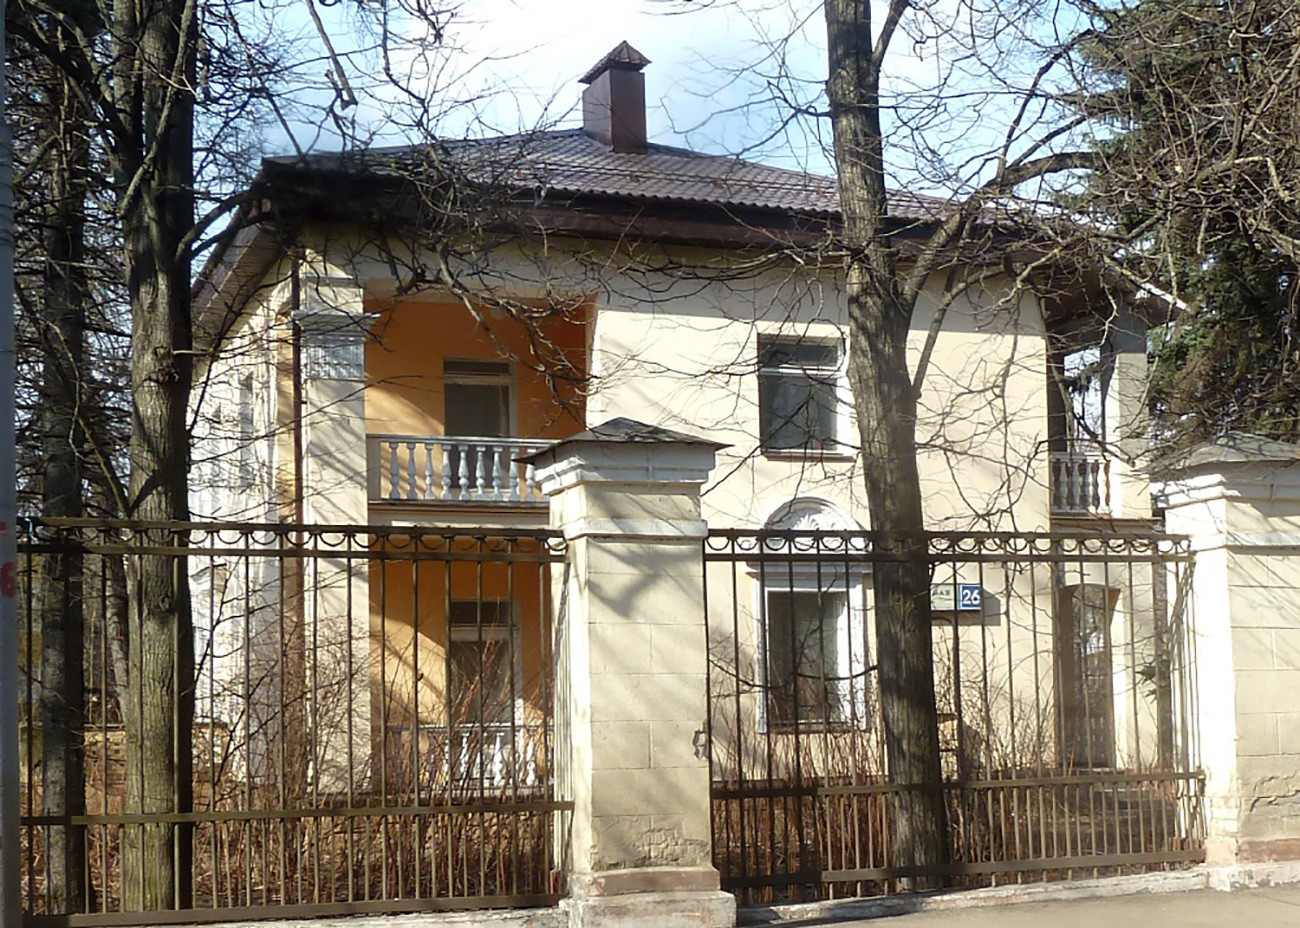 Pekhotnaya, 26 in Moscow, the real home of Valery Legasov